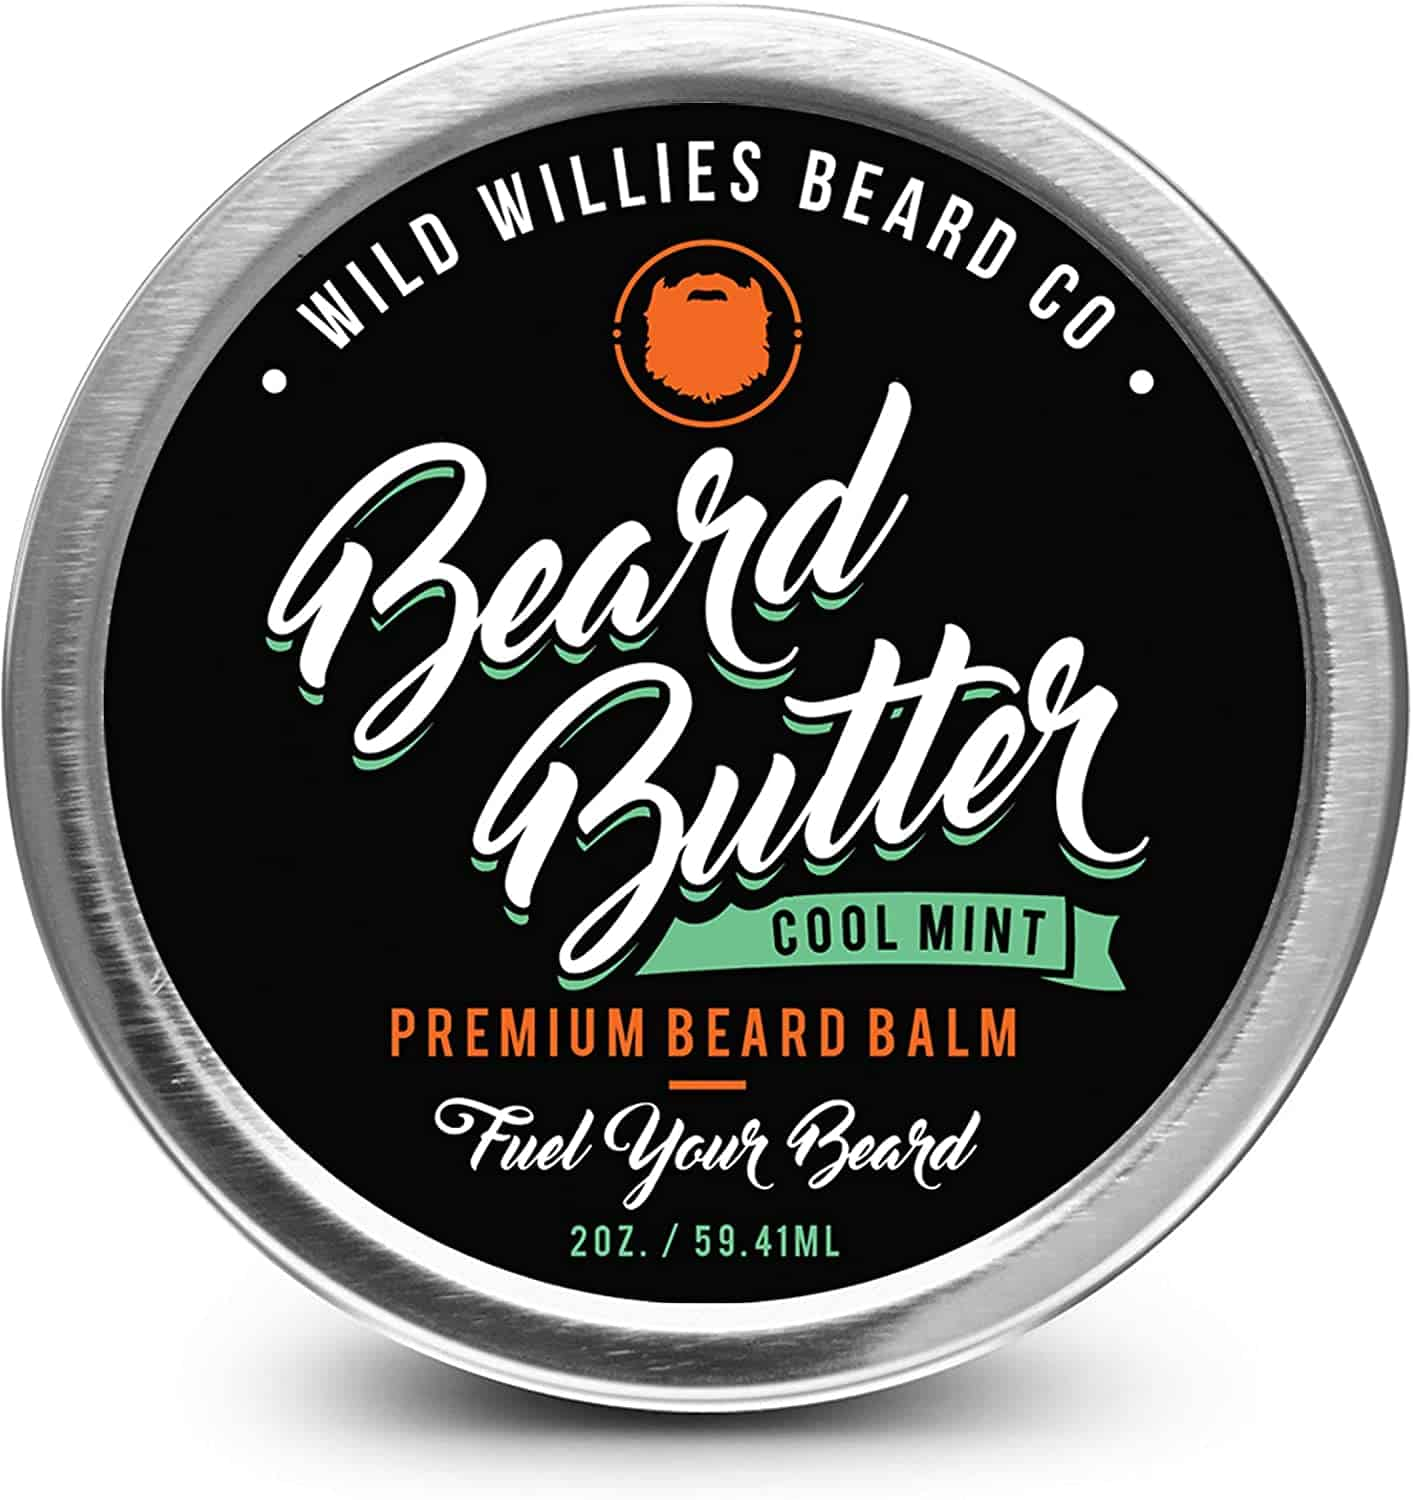 Wild Willies Beard Butter